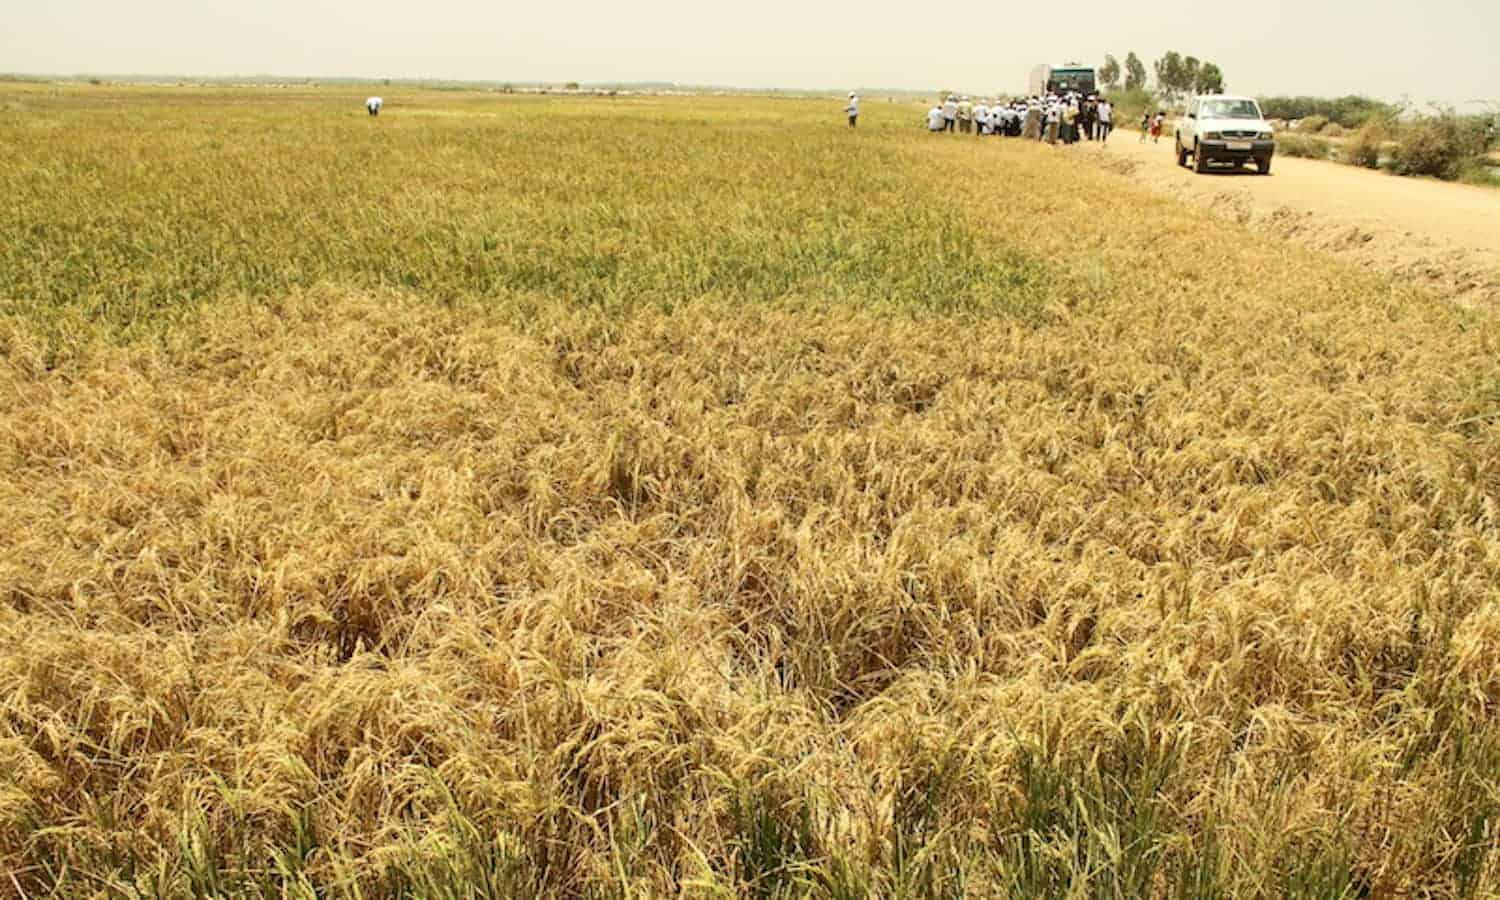 With regional recognition, CERAAS in Senegal plans to expand its efforts to adapt dry cereals to drought conditions throughout West and Central Africa.